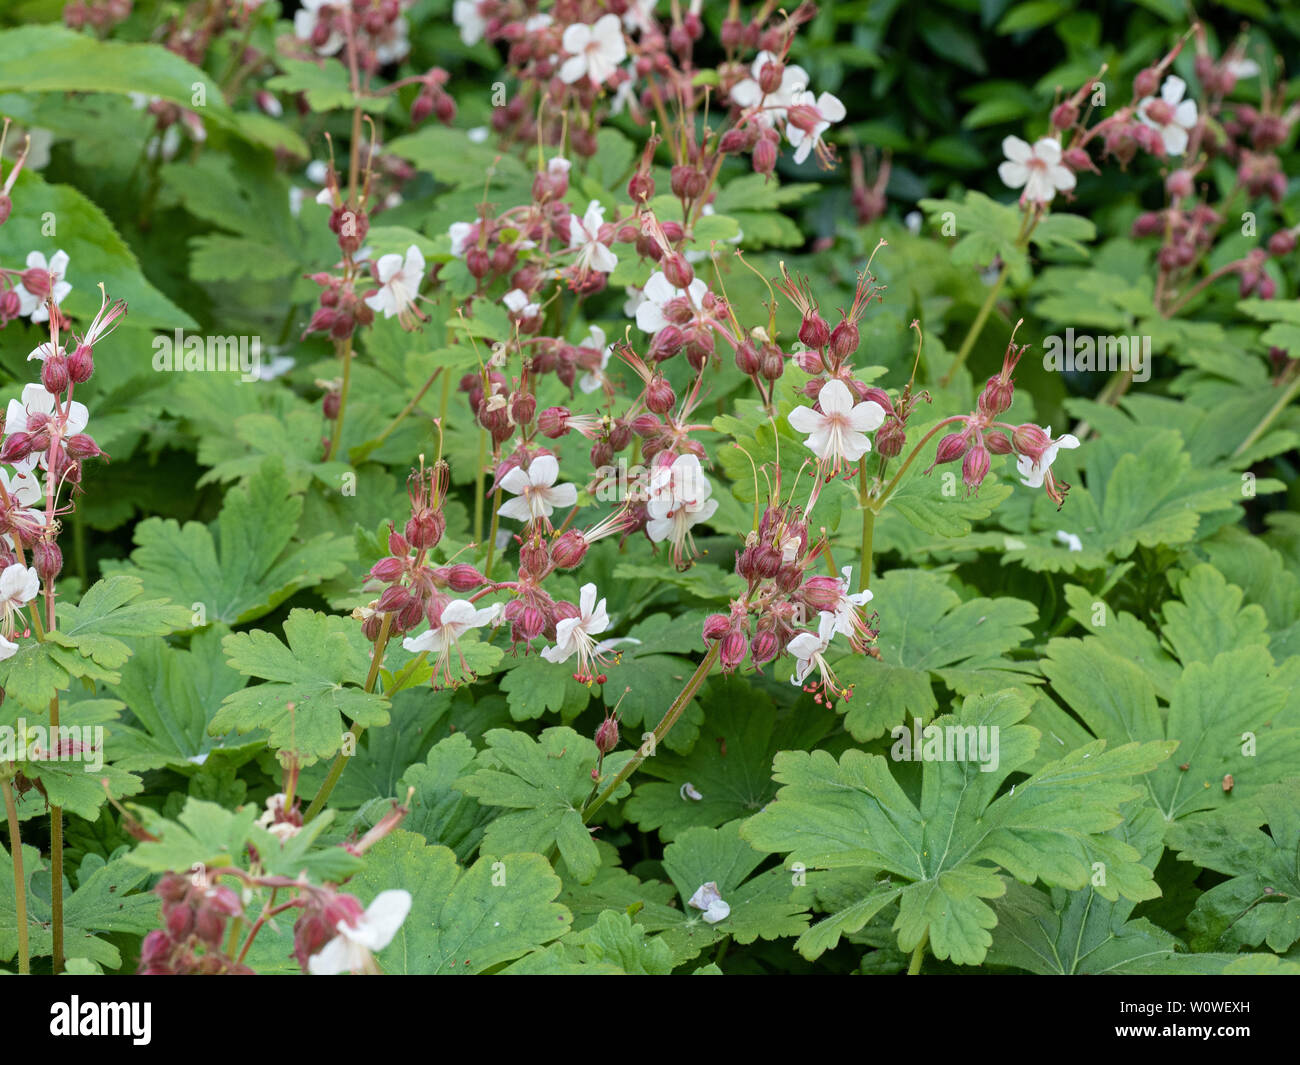 A flowering clump of Geranium macrorrhizum album showing the white flowers and coral calyces - Stock Image